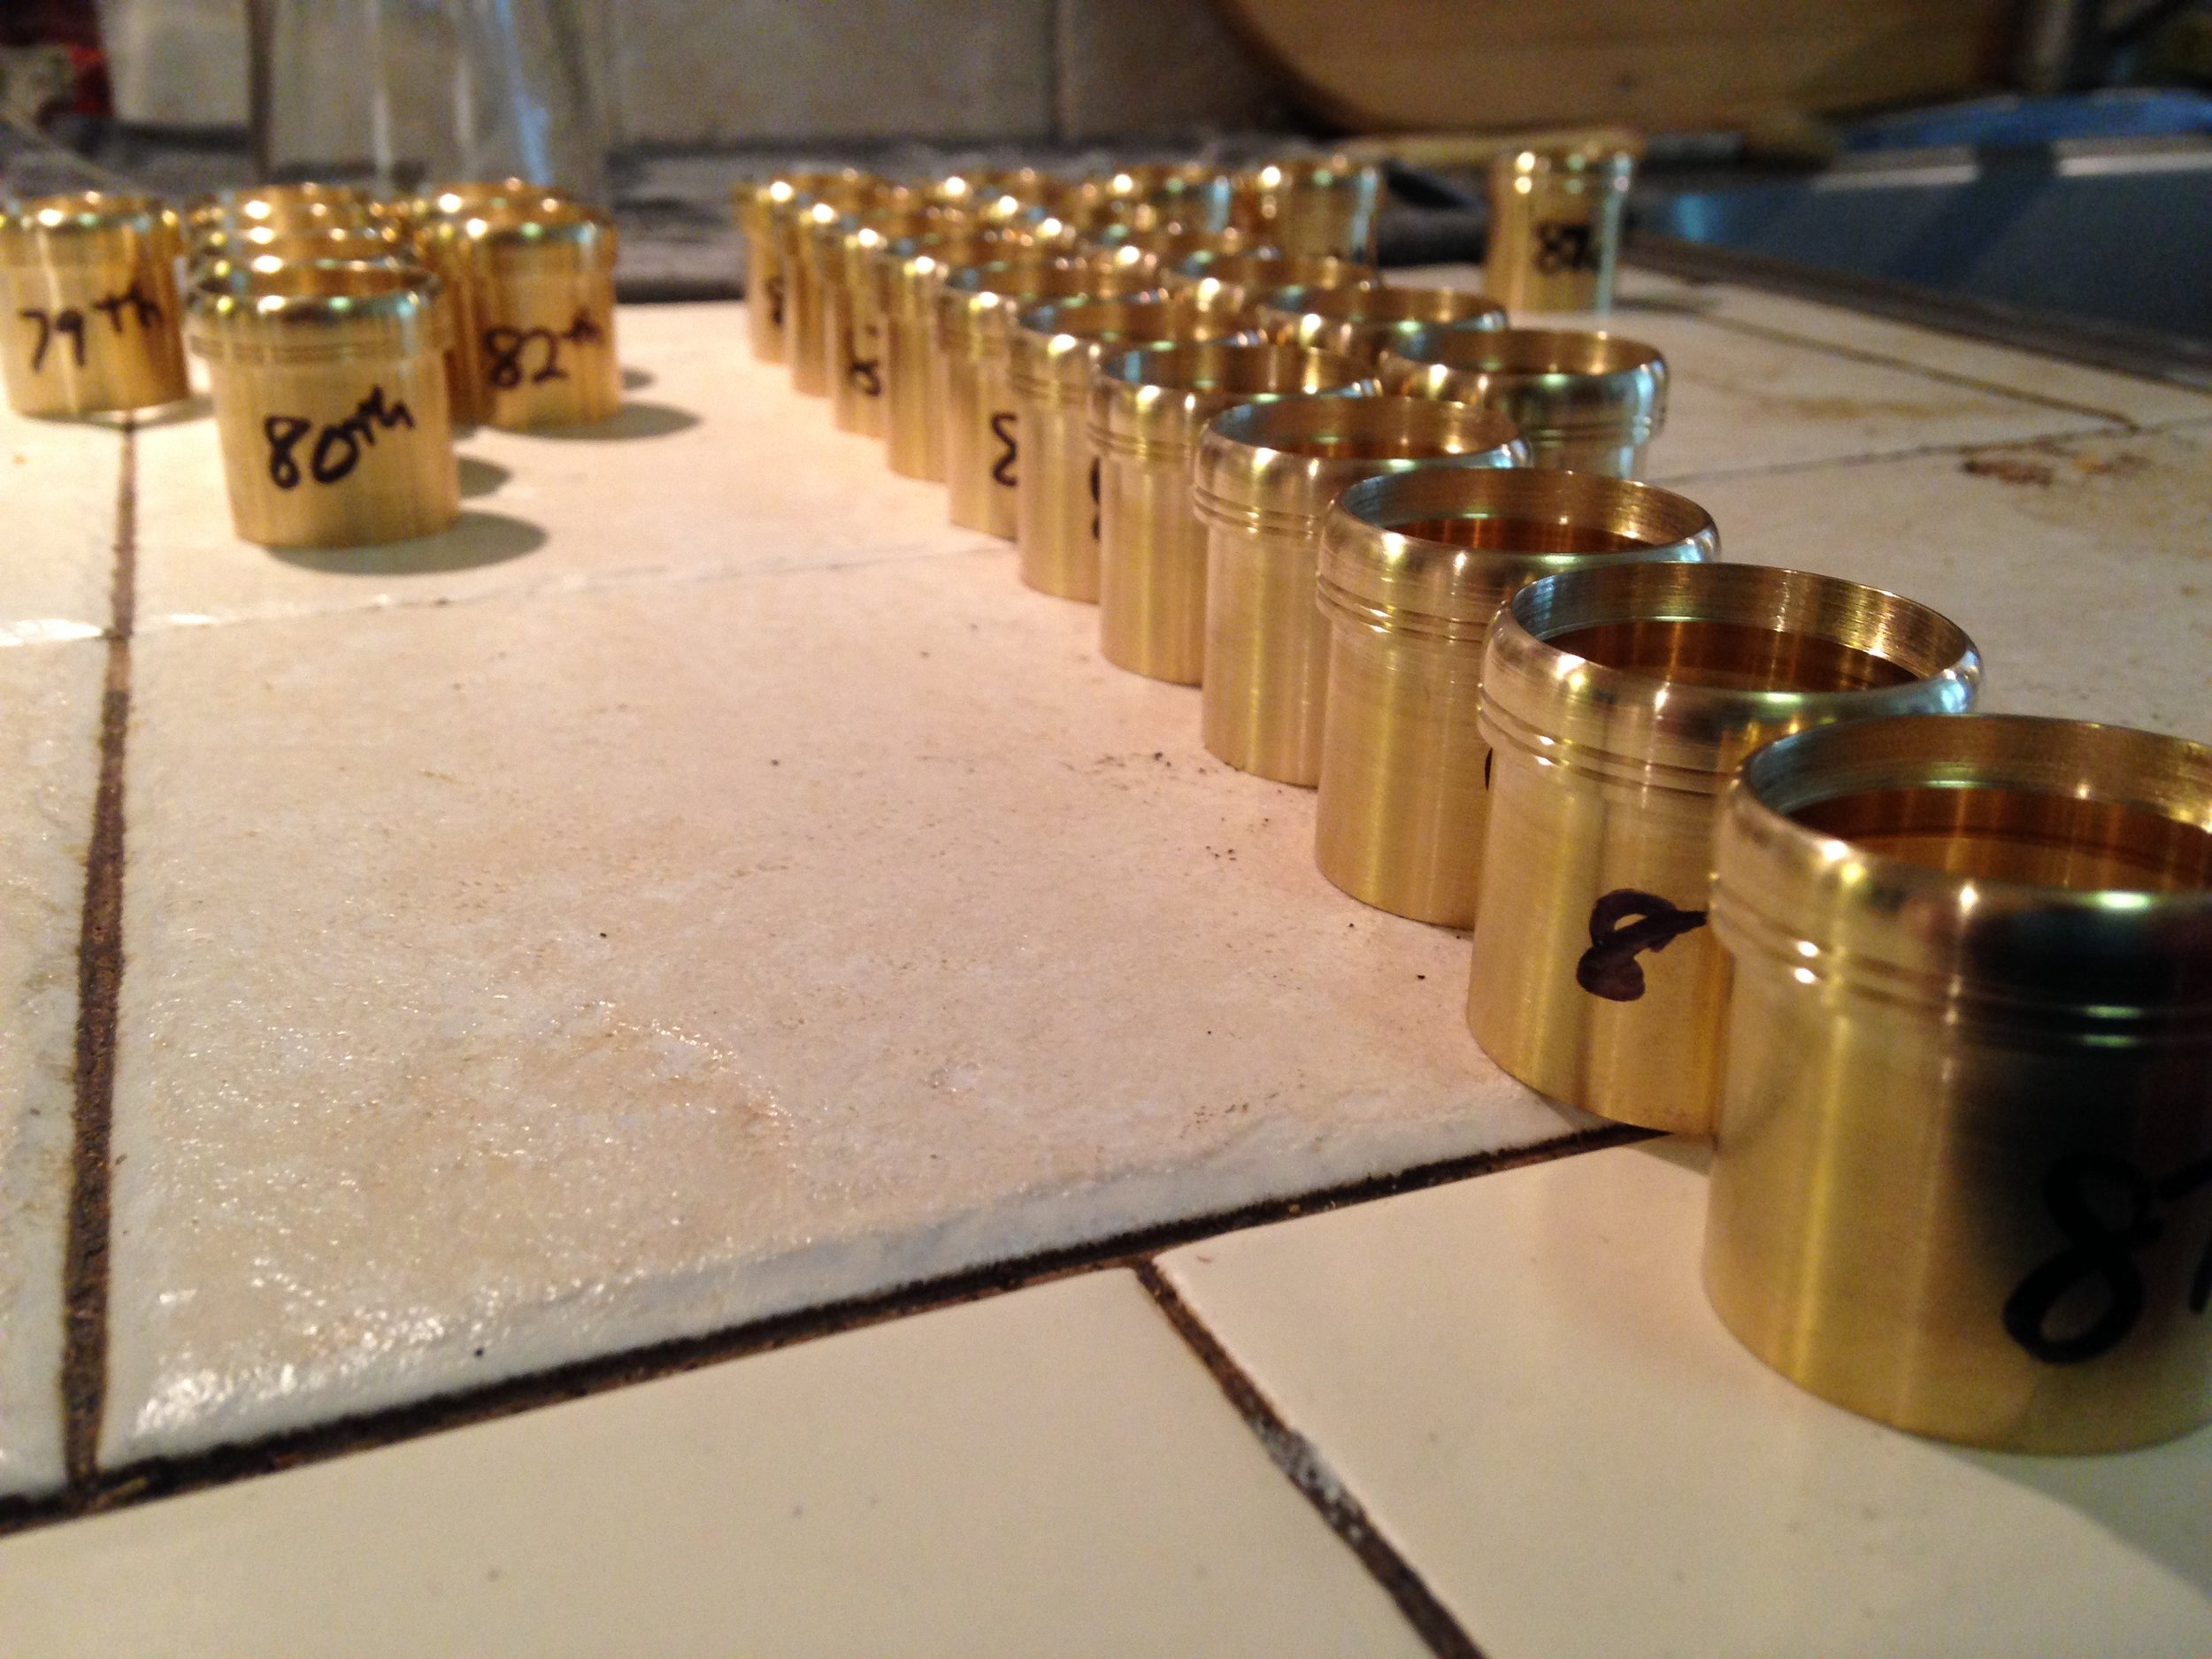 This is an order of neck tenons ready to ship out to KB Saxophone services, where their team will build out their KB Handcrafted Saxophone necks. Check them out at www.kbsax.com